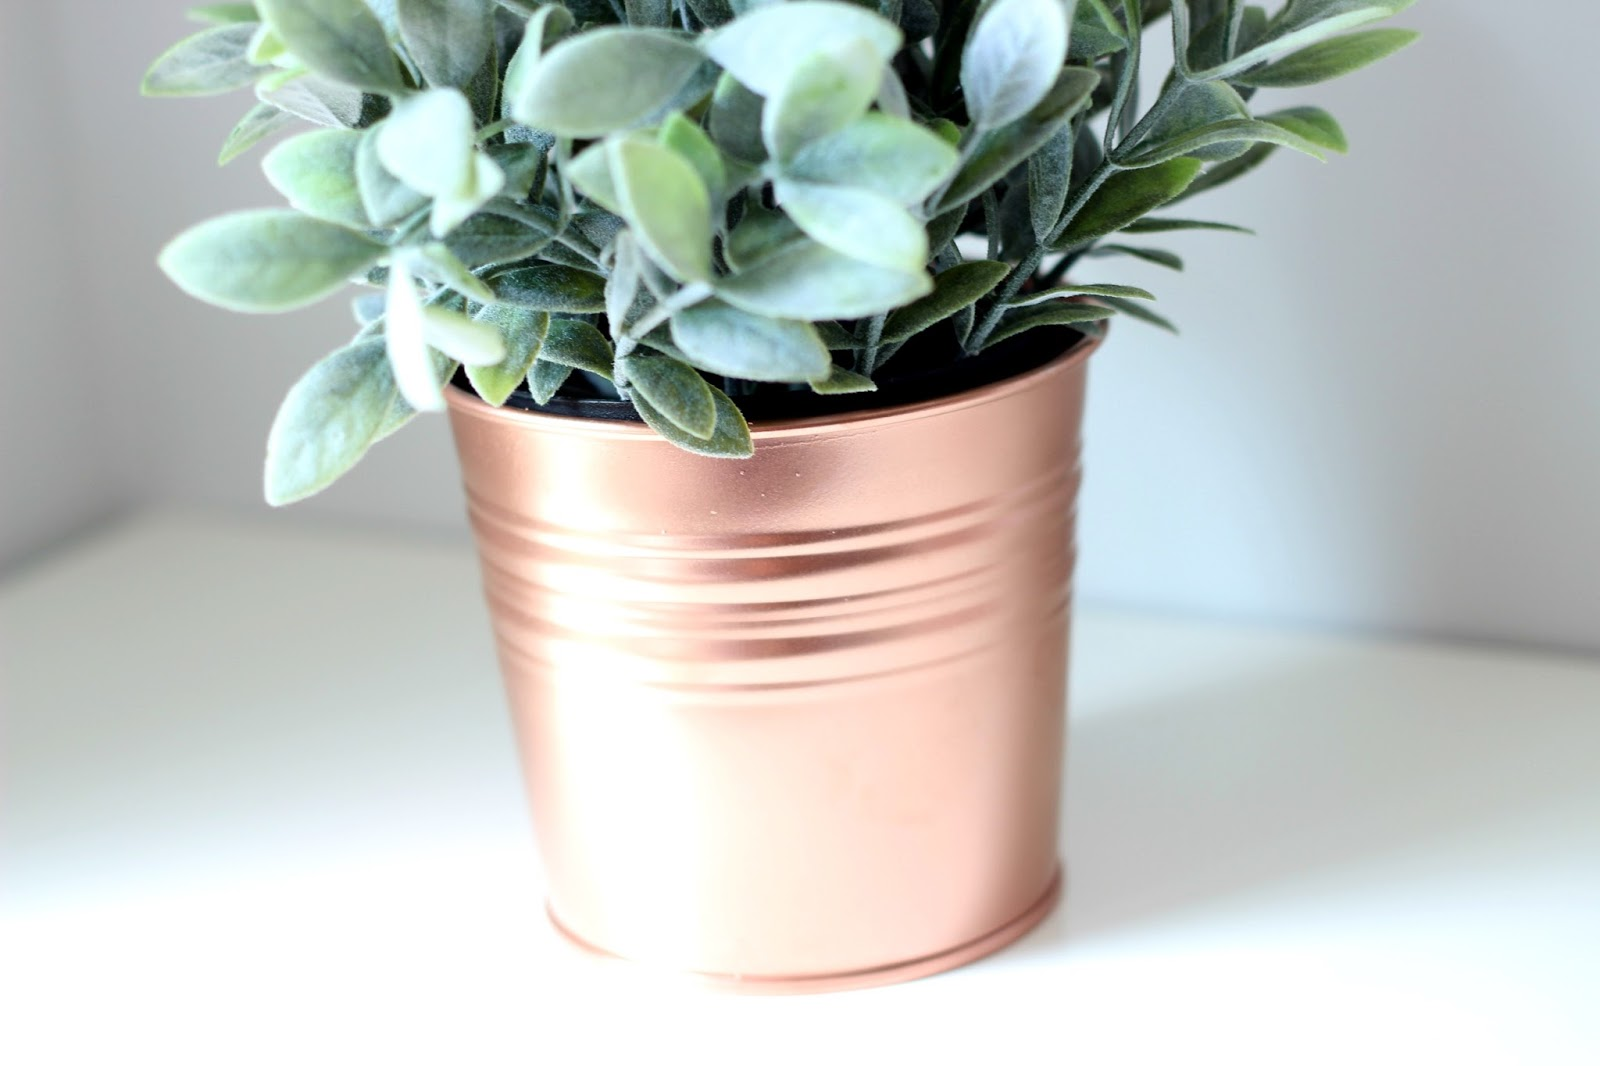 A picture of a DIY Copper Ikea Plant Pot